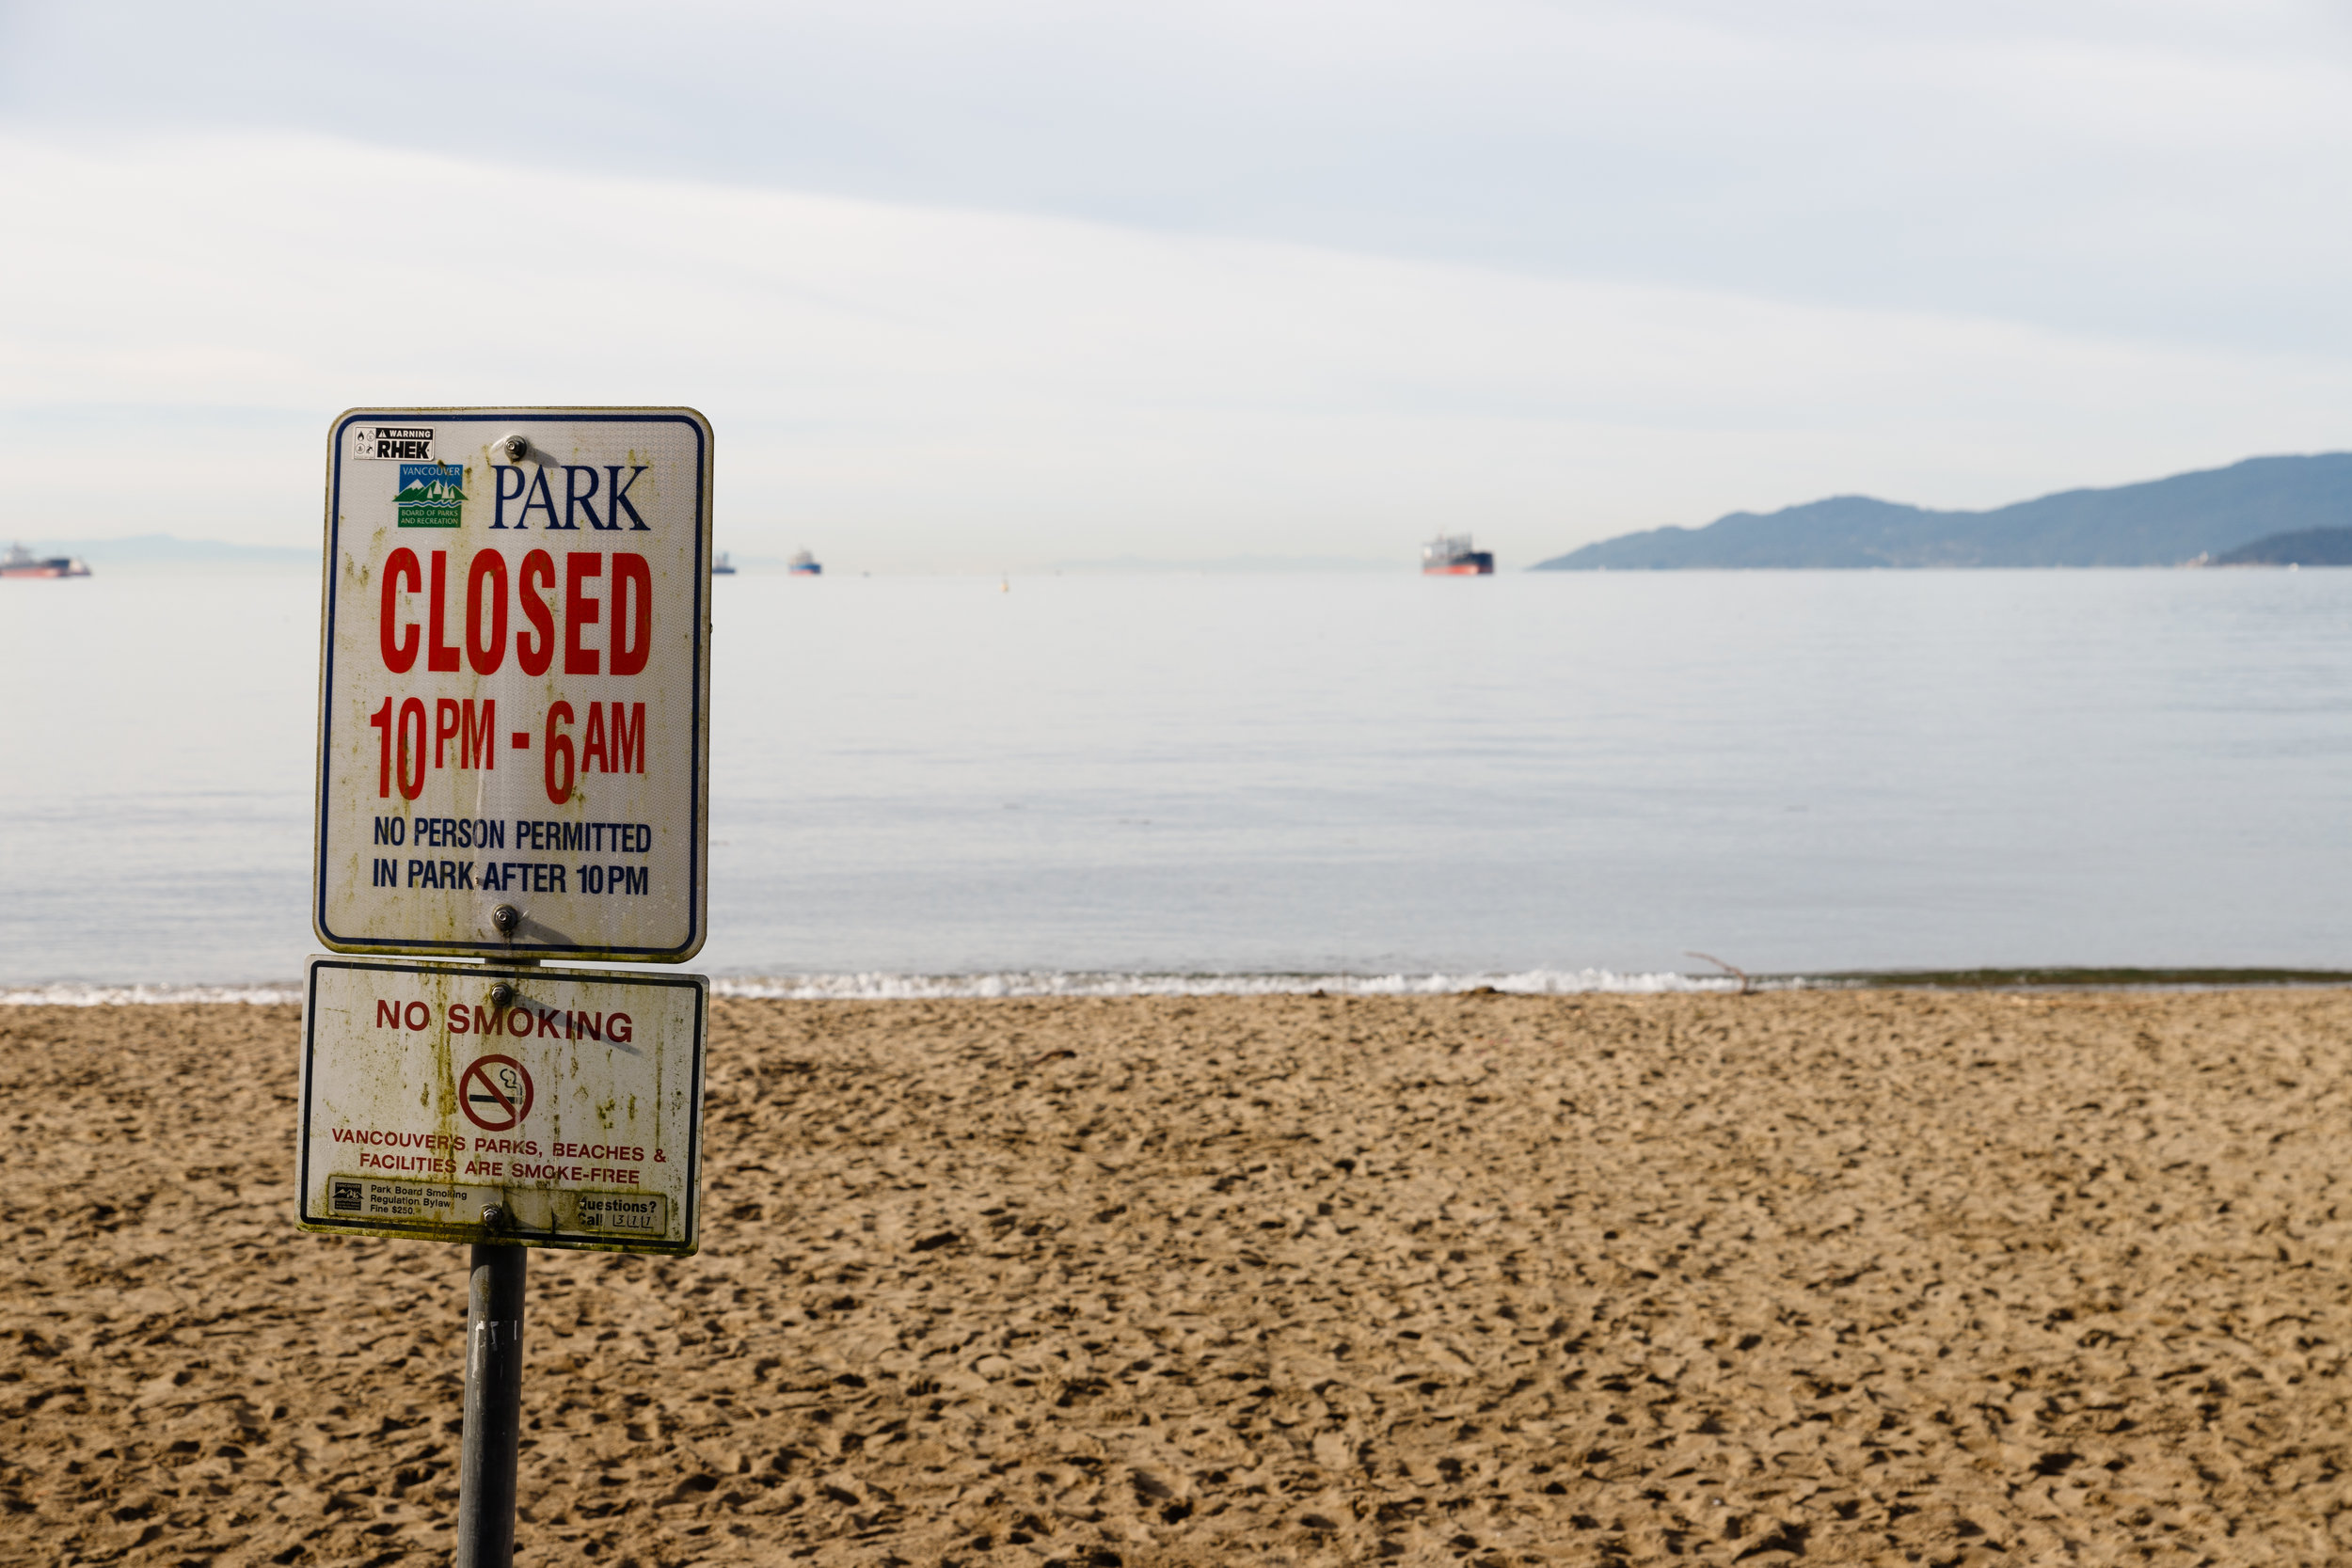 Not sure if the sign is telling park users overstaying their welcome to get in the sea... probably not.